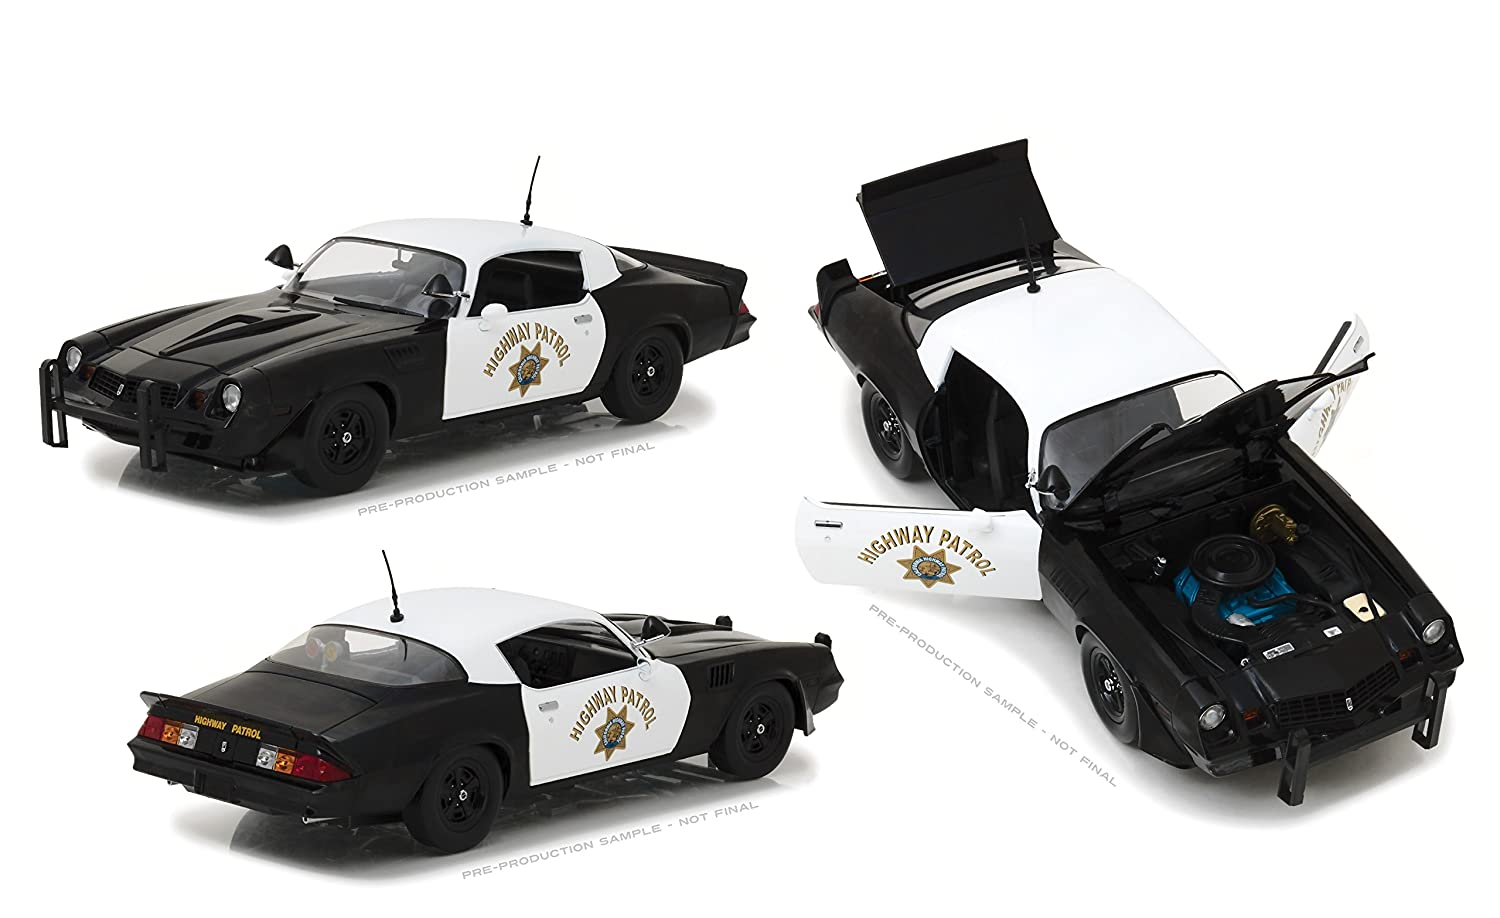 Amazon.com: Greenlight 1:18 1979 Chevy Camaro Z/28 with California Highway Patrol Officer Figure Die-Cast Vehicle: Toys & Games